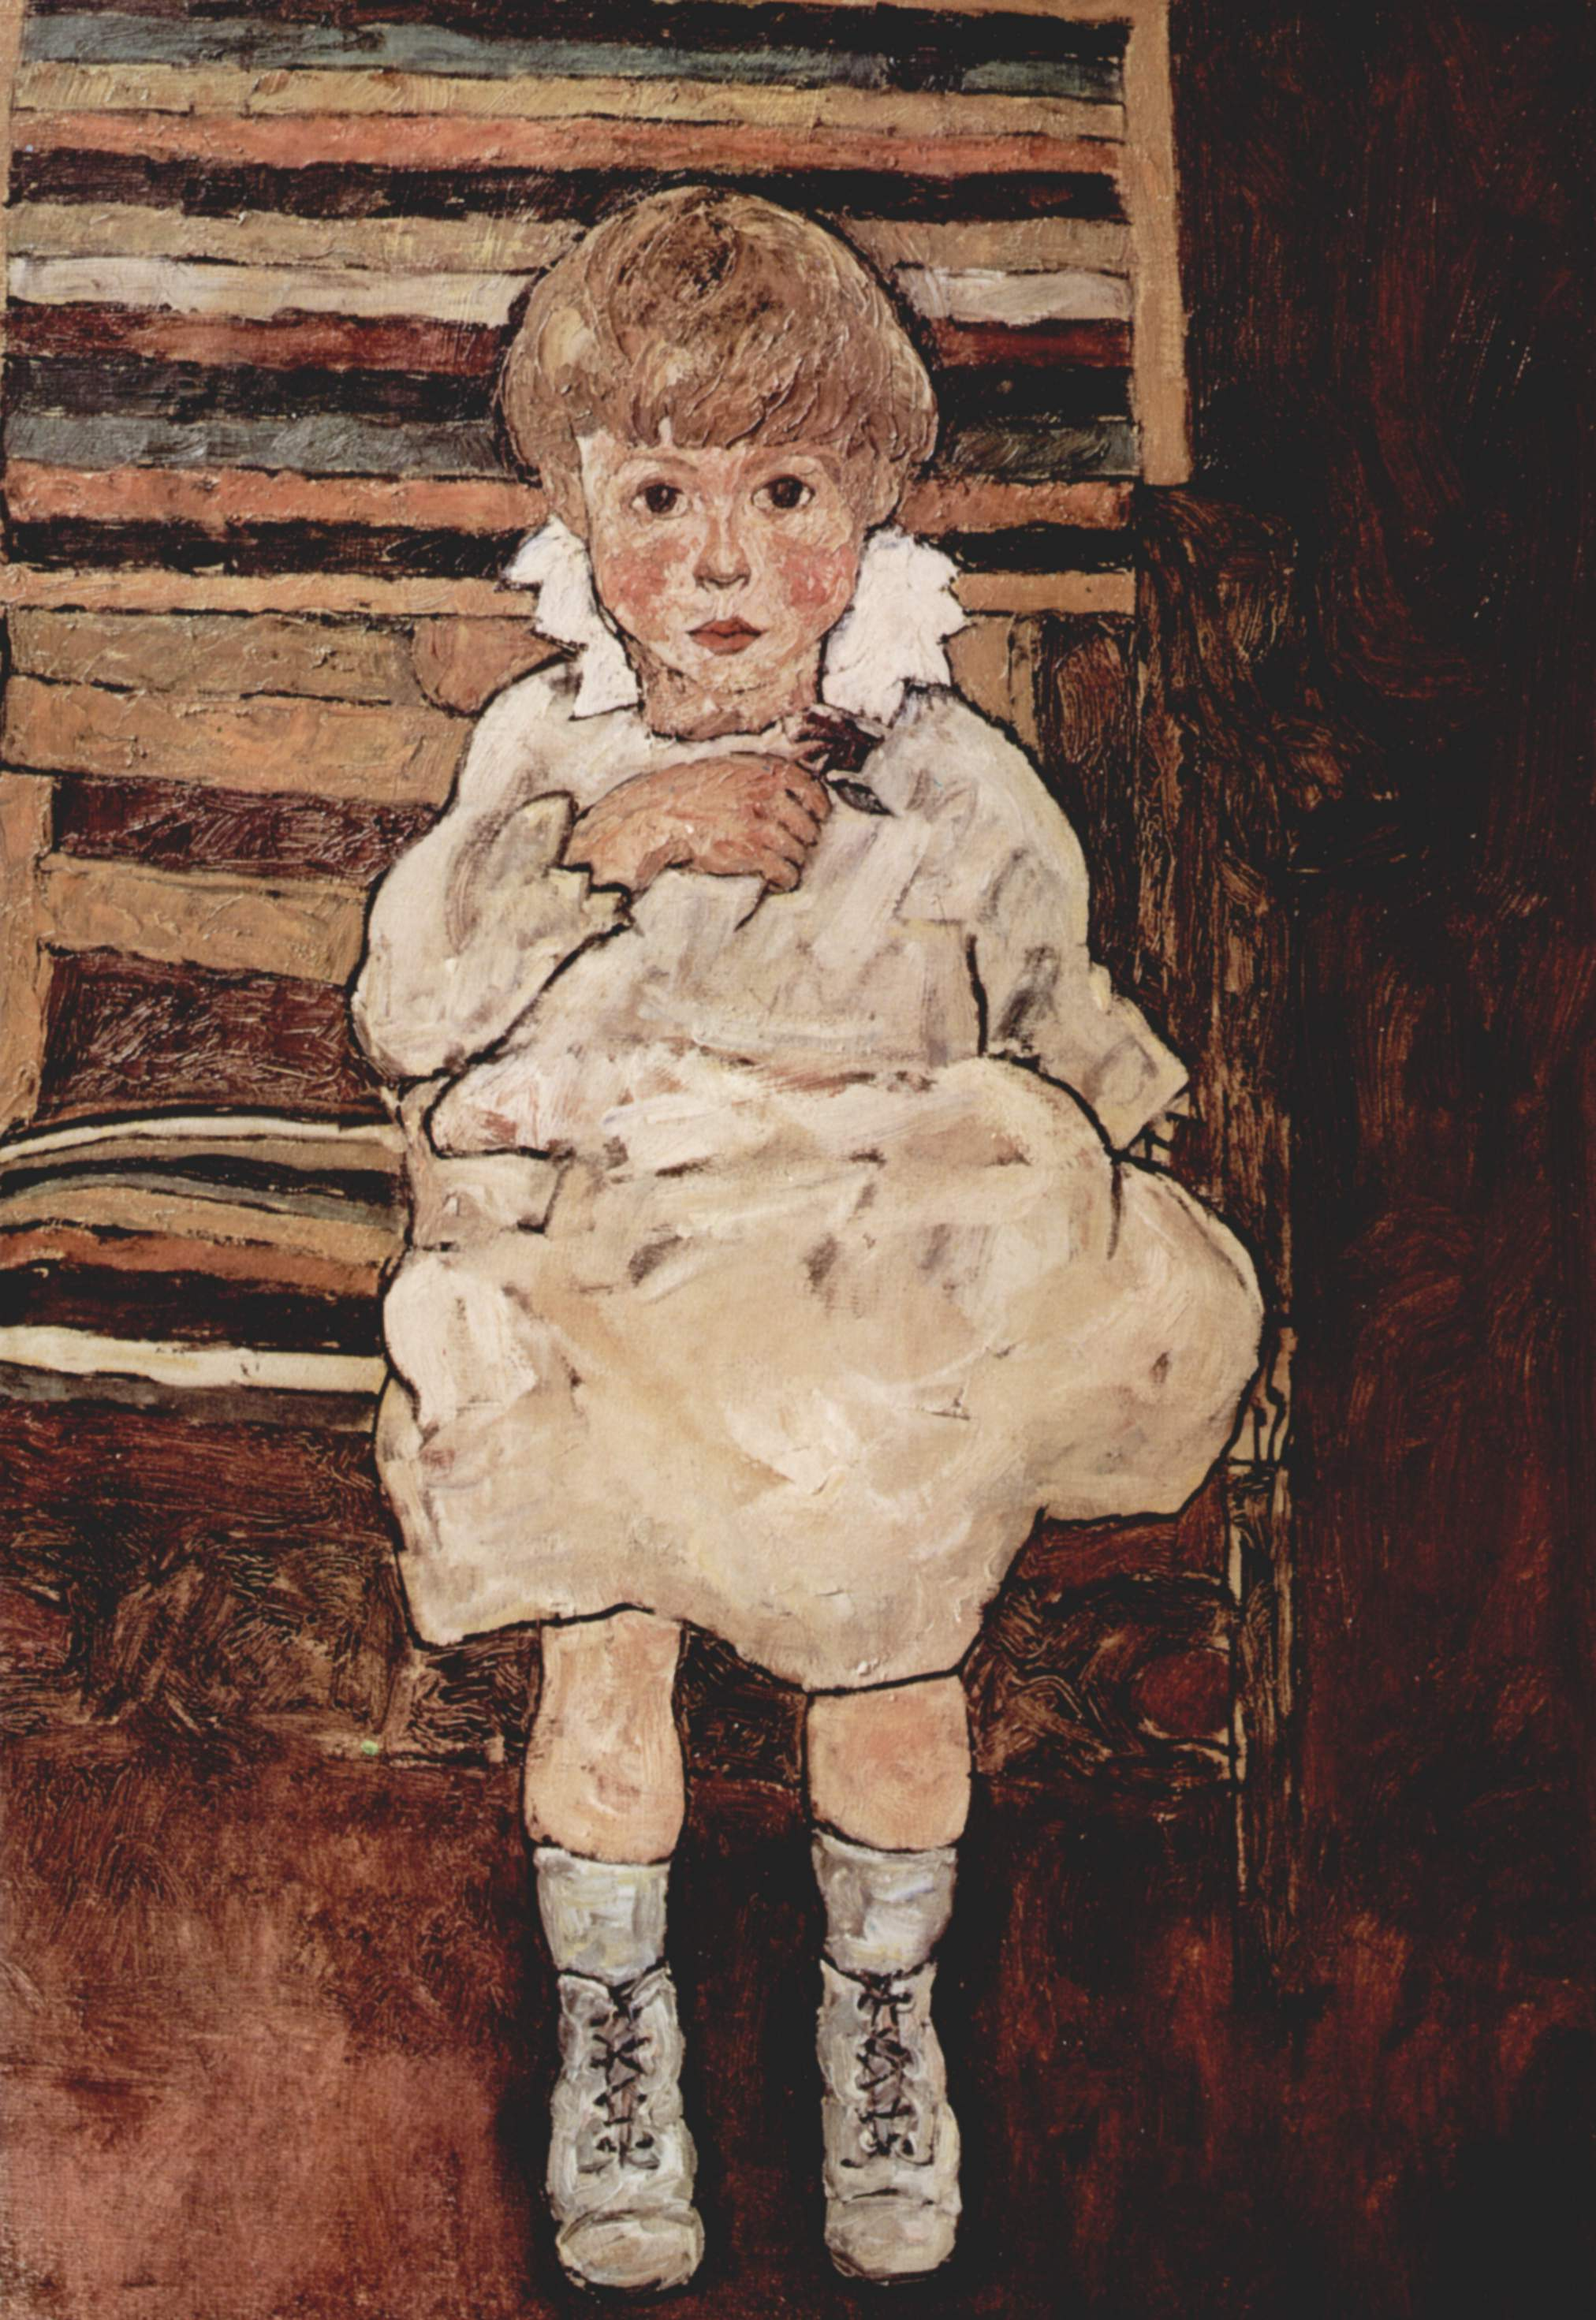 https://i0.wp.com/upload.wikimedia.org/wikipedia/commons/7/74/Egon_Schiele_086.jpg